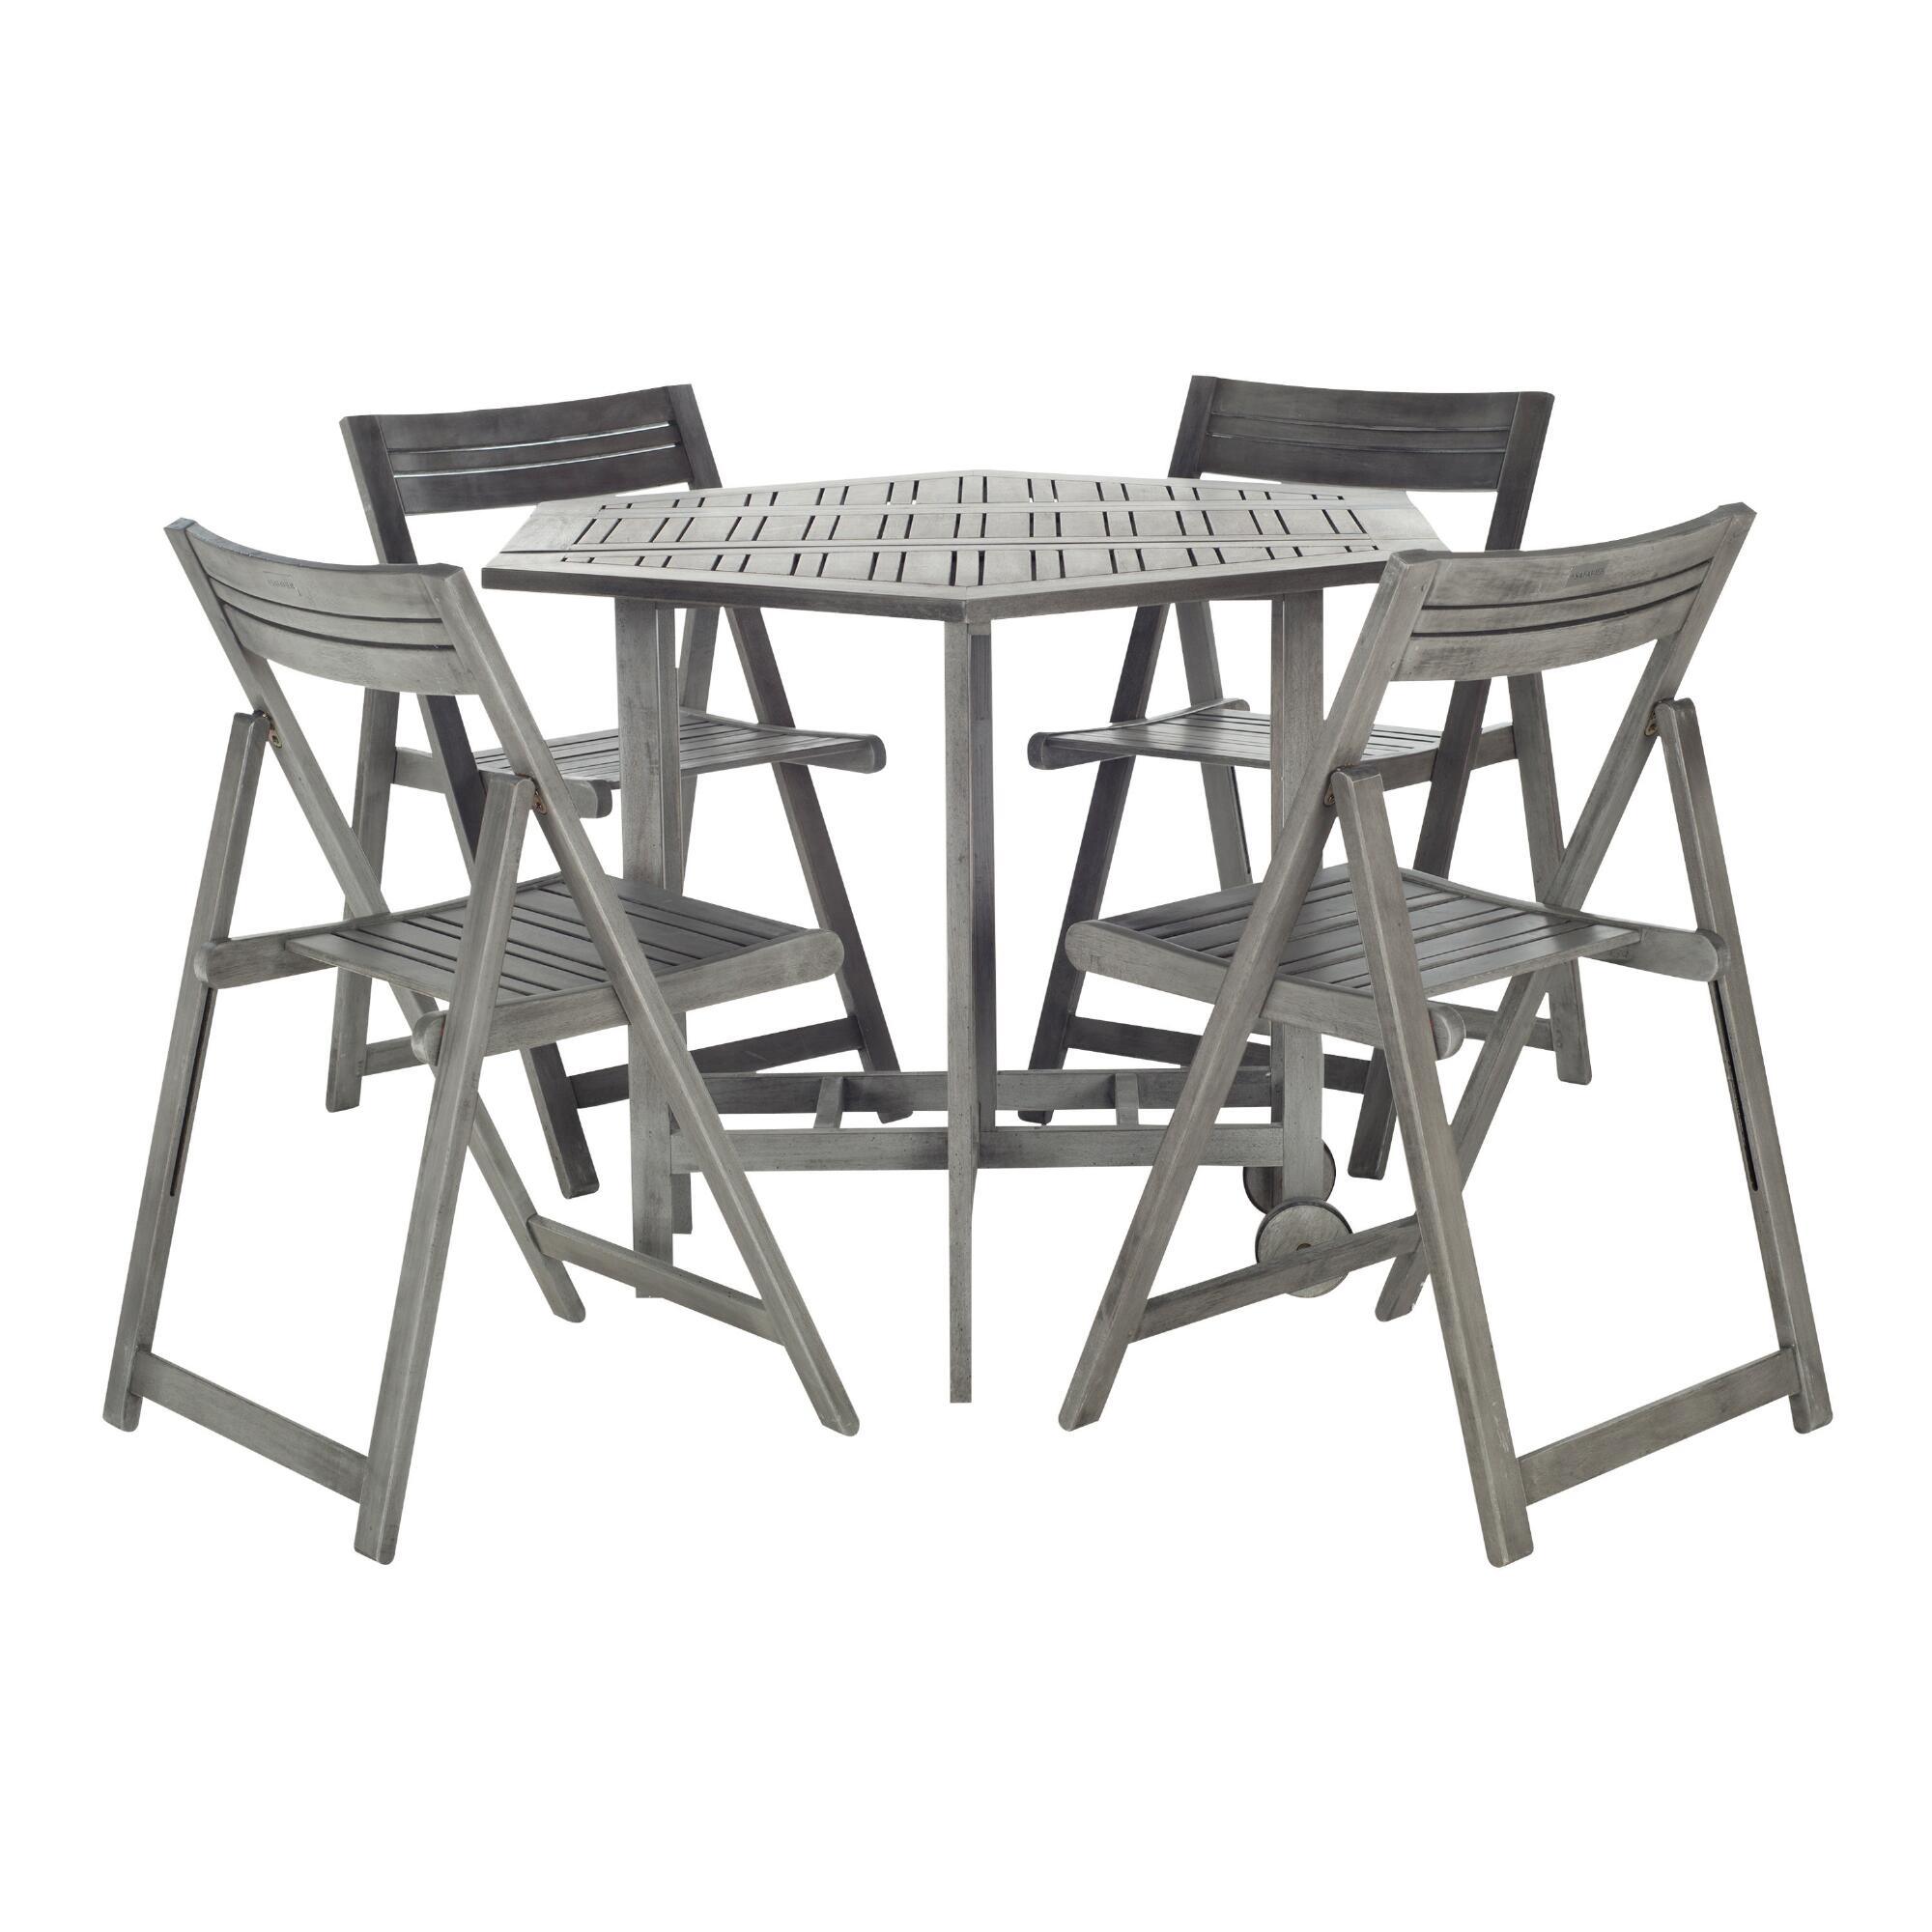 Graywash Wood Holcut Square 5 Piece Outdoor Patio Dining Set by World Market